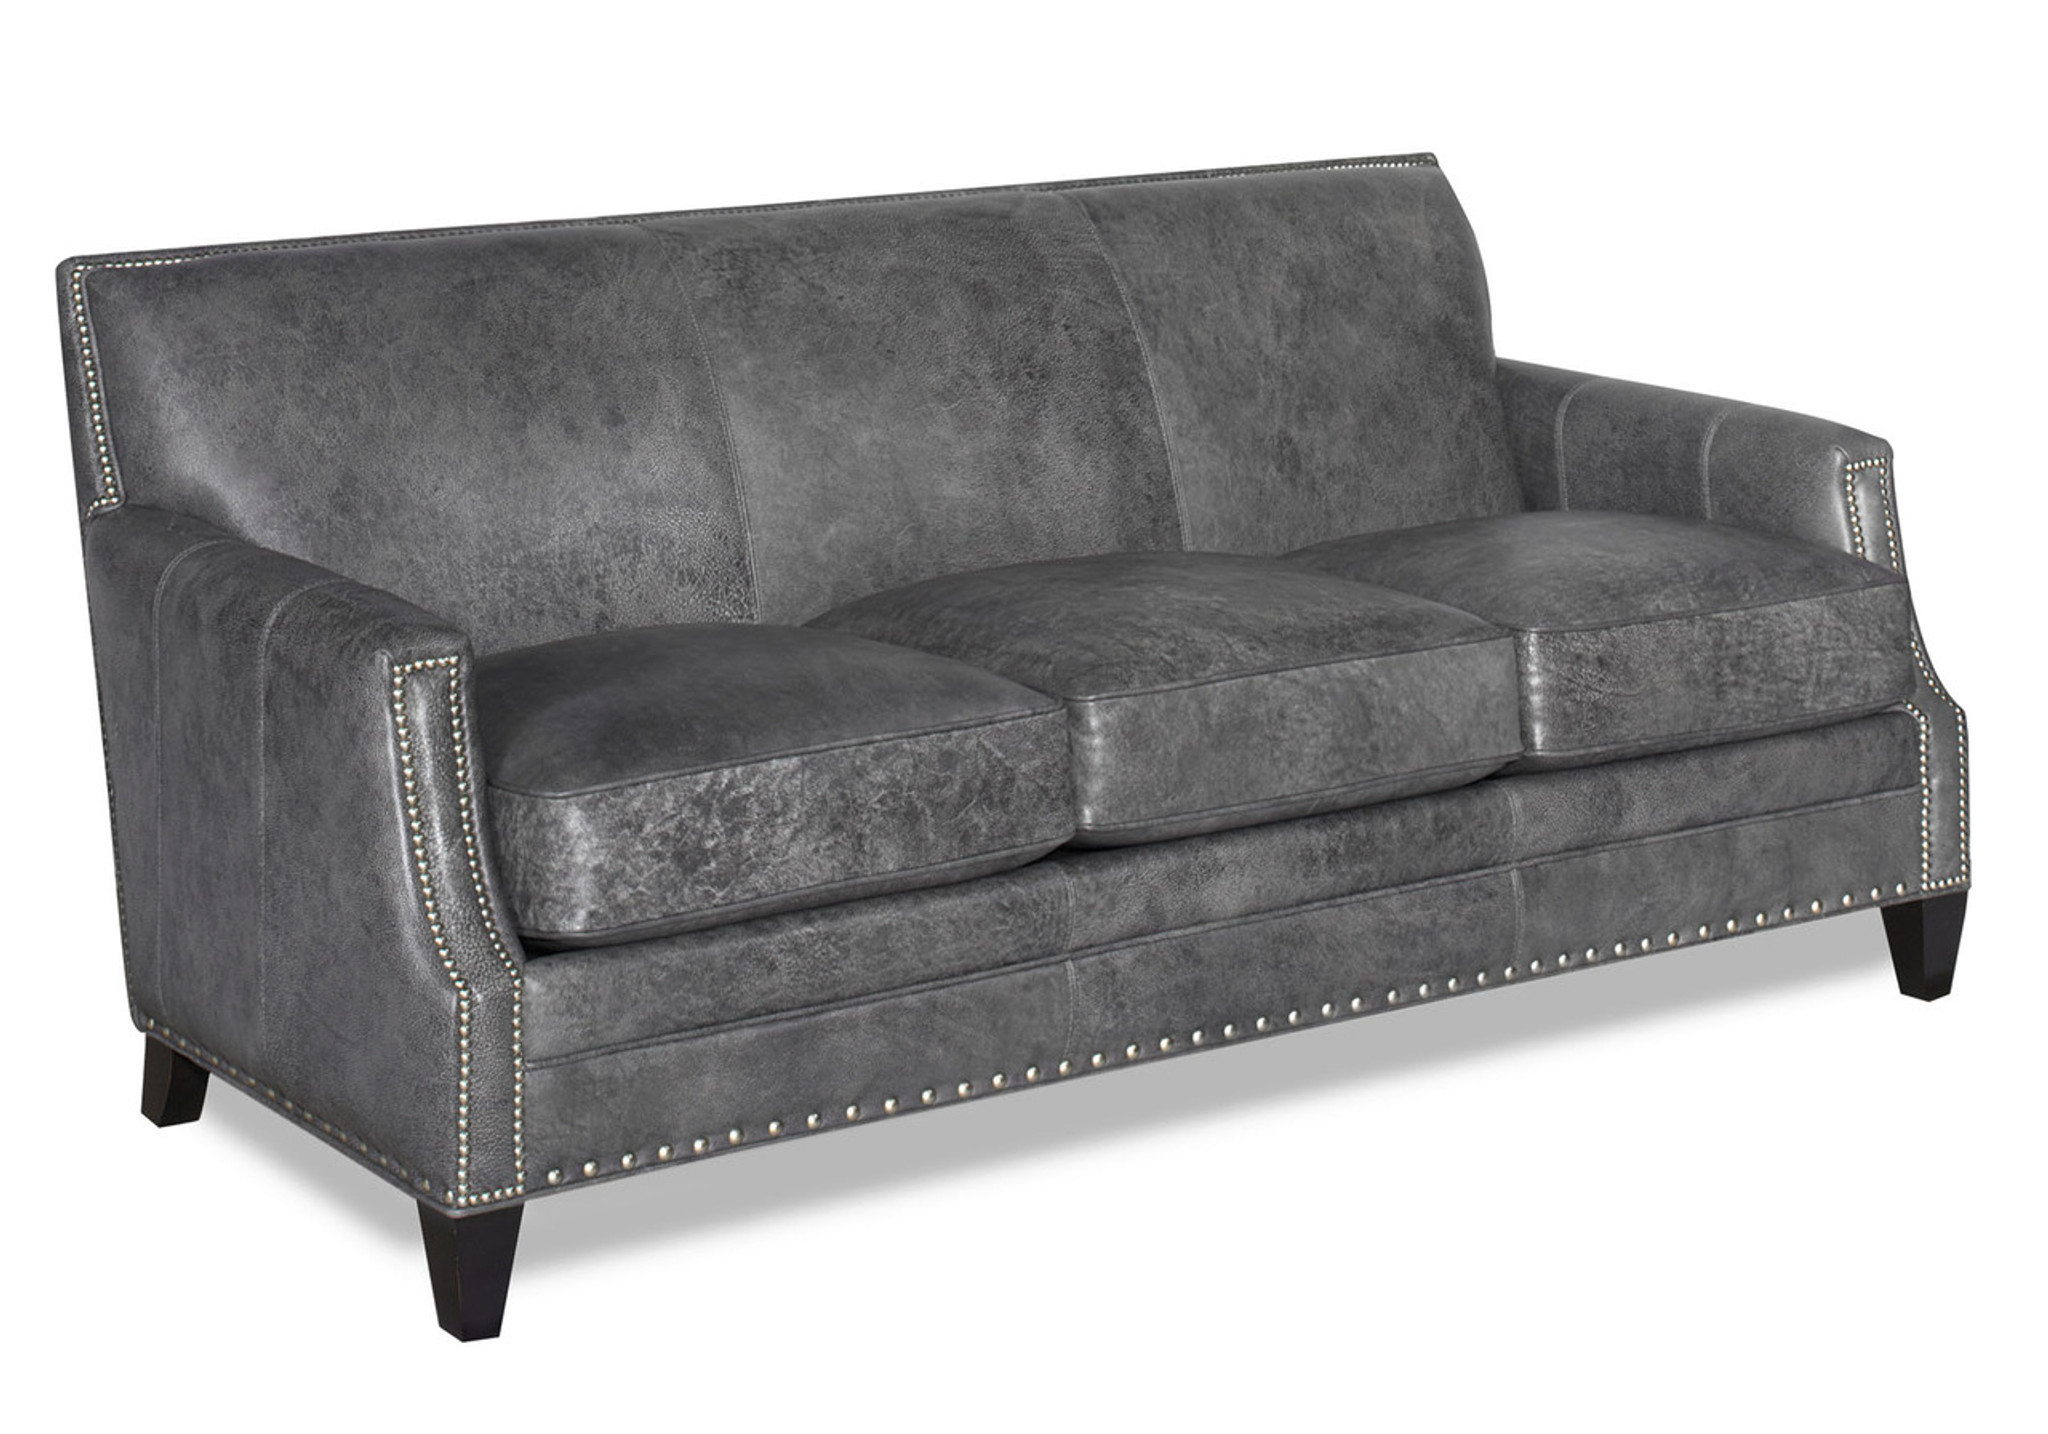 American heritage griffin sofa series 20 off